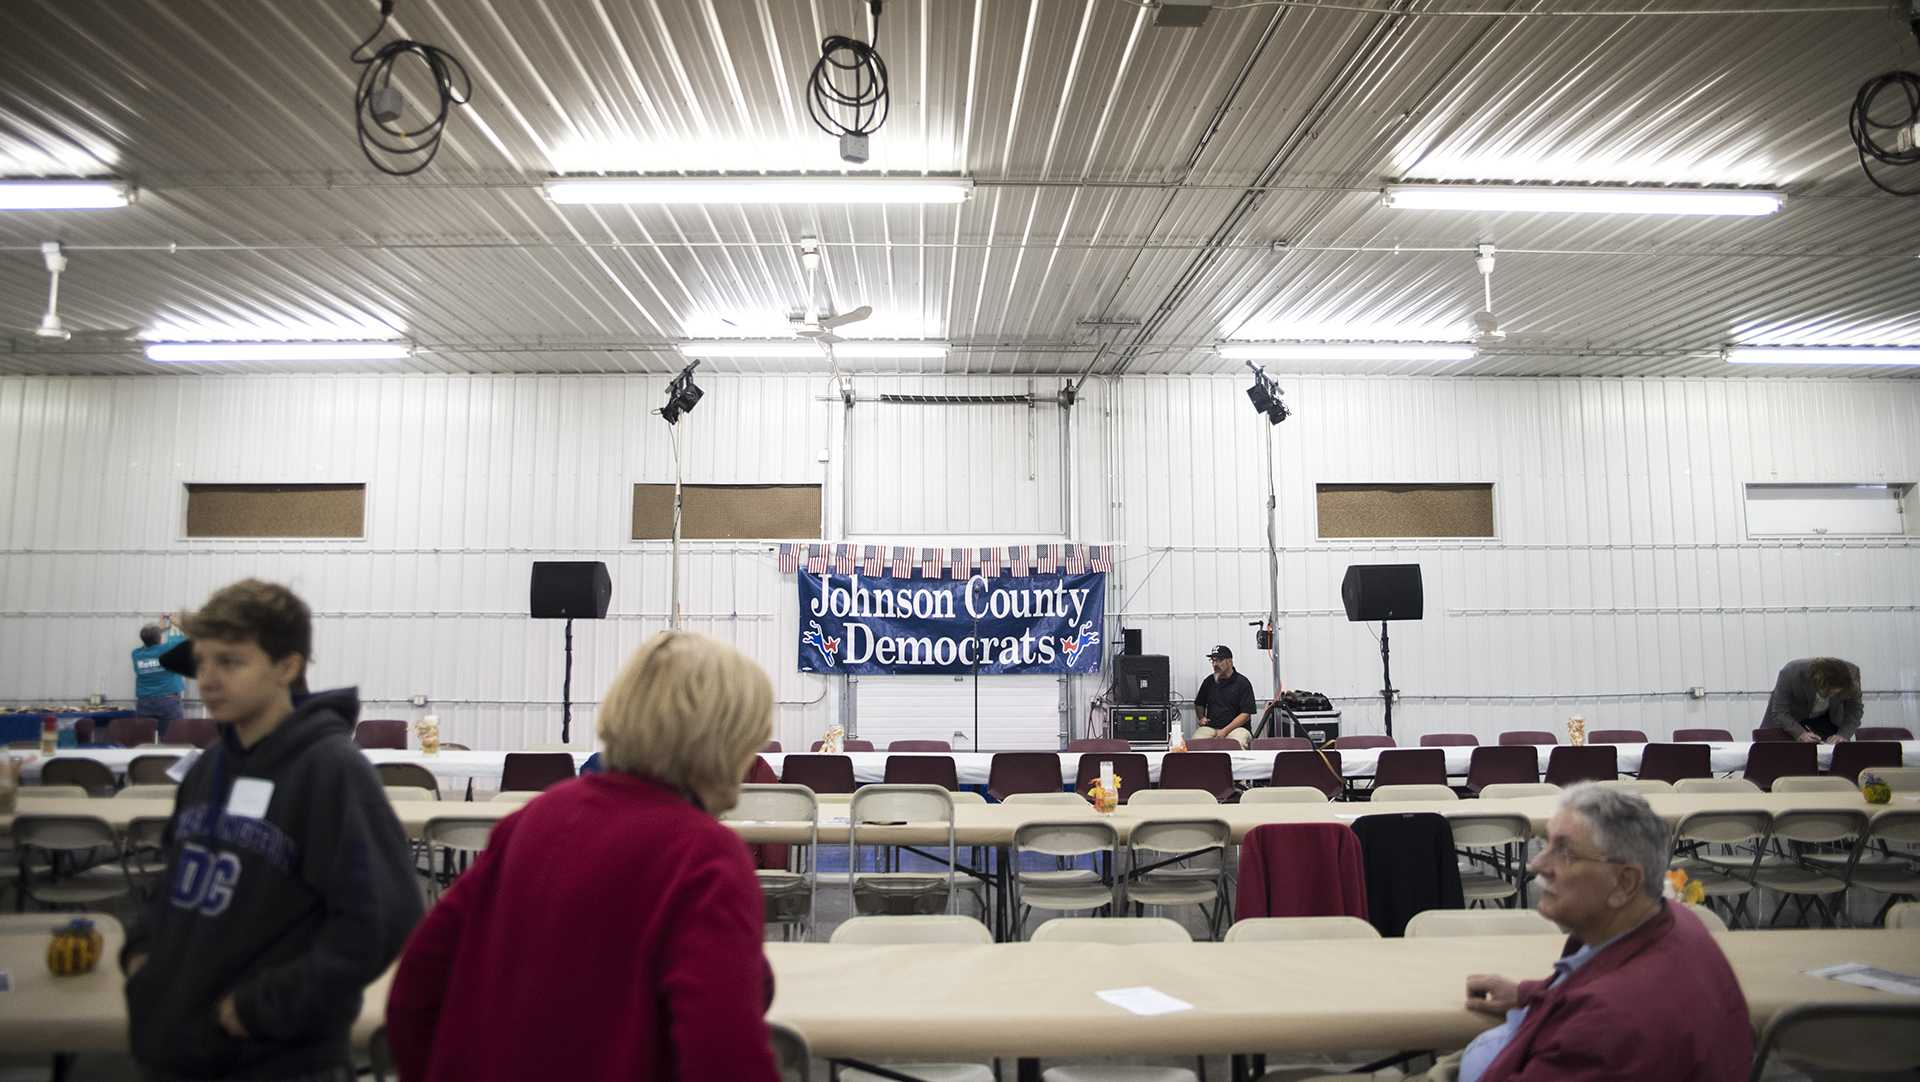 Johnson County Democrats held a barbecue at the Johnson County Fairgrounds on Sunday, Oct. 15, 2017. Multiple gubernatorial candidates spoke at the event as well as guest speaker Rep. Dave Loebsack, D-Iowa. (Ben Smith/The Daily Iowan)